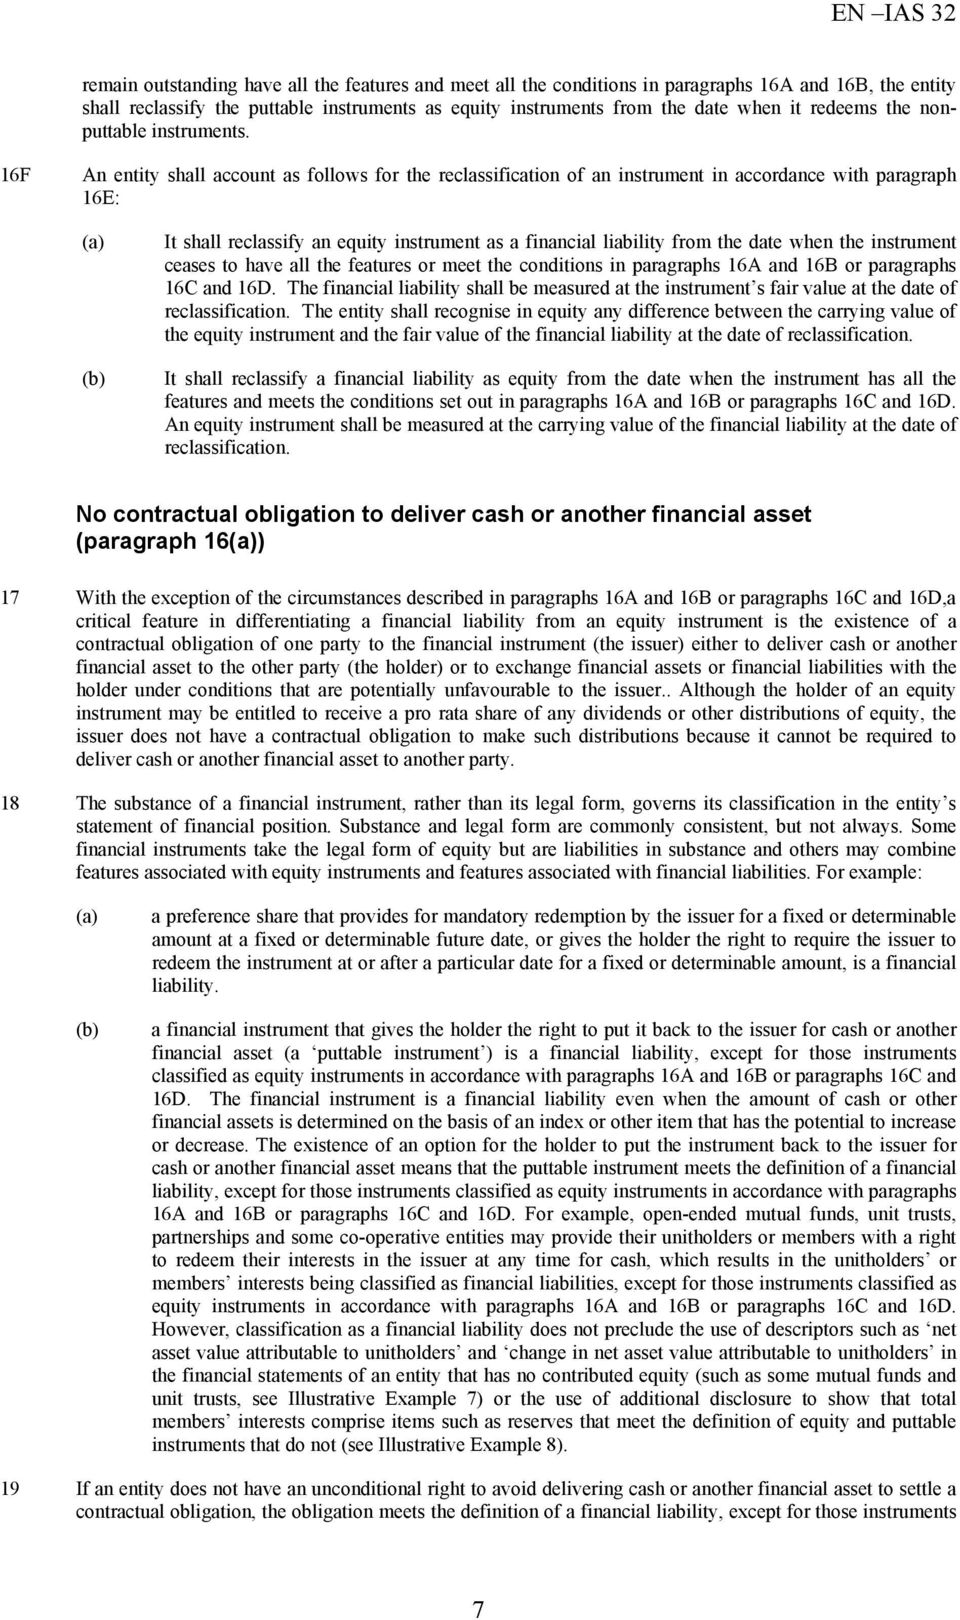 16F An entity shall account as follows for the reclassification of an instrument in accordance with paragraph 16E: It shall reclassify an equity instrument as a financial liability from the date when